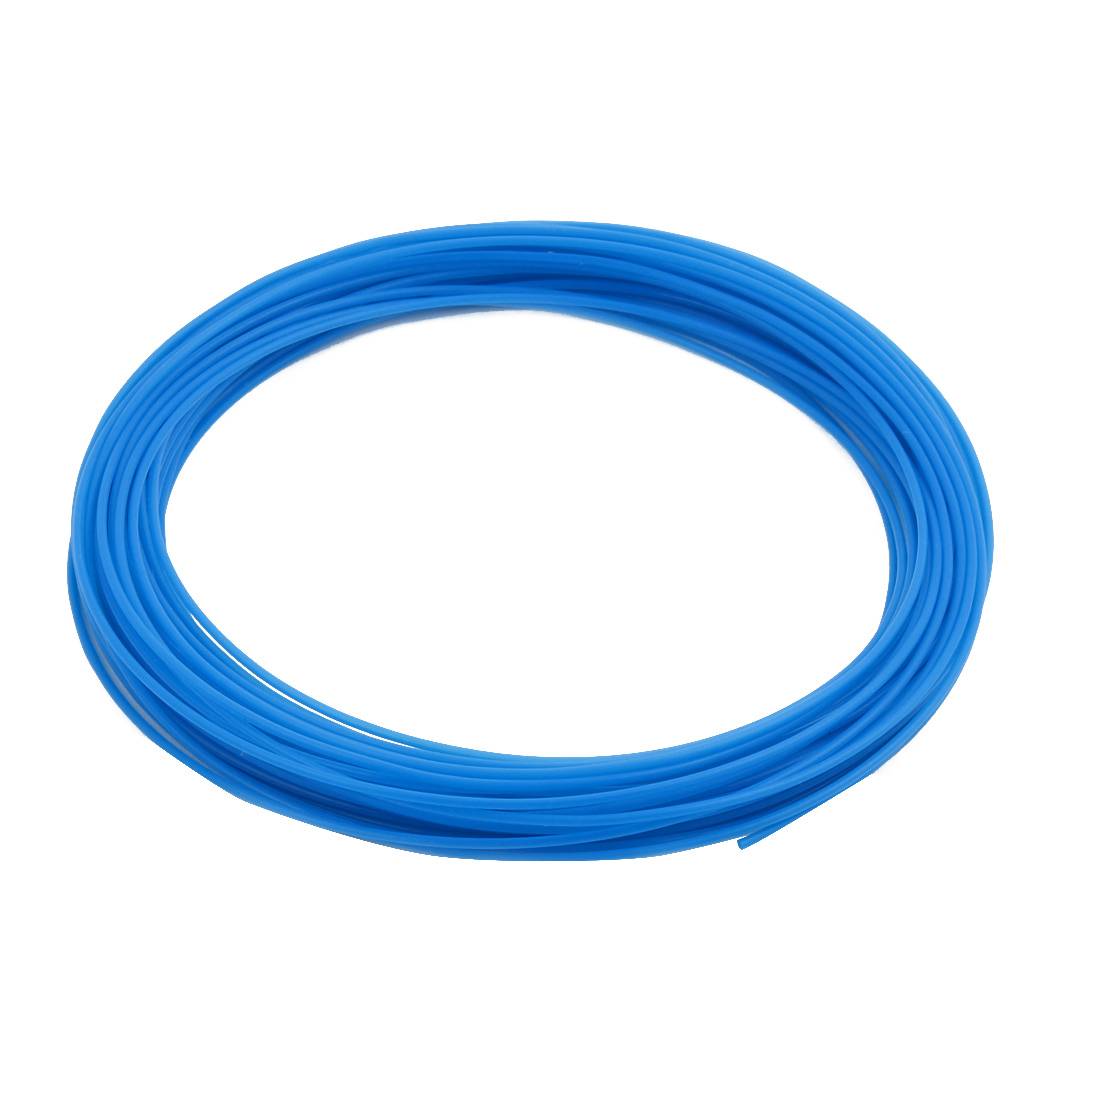 1.19mmx1.49mm PTFE Resistant High Temperature Blue Tubing 10 Meters 32.8Ft